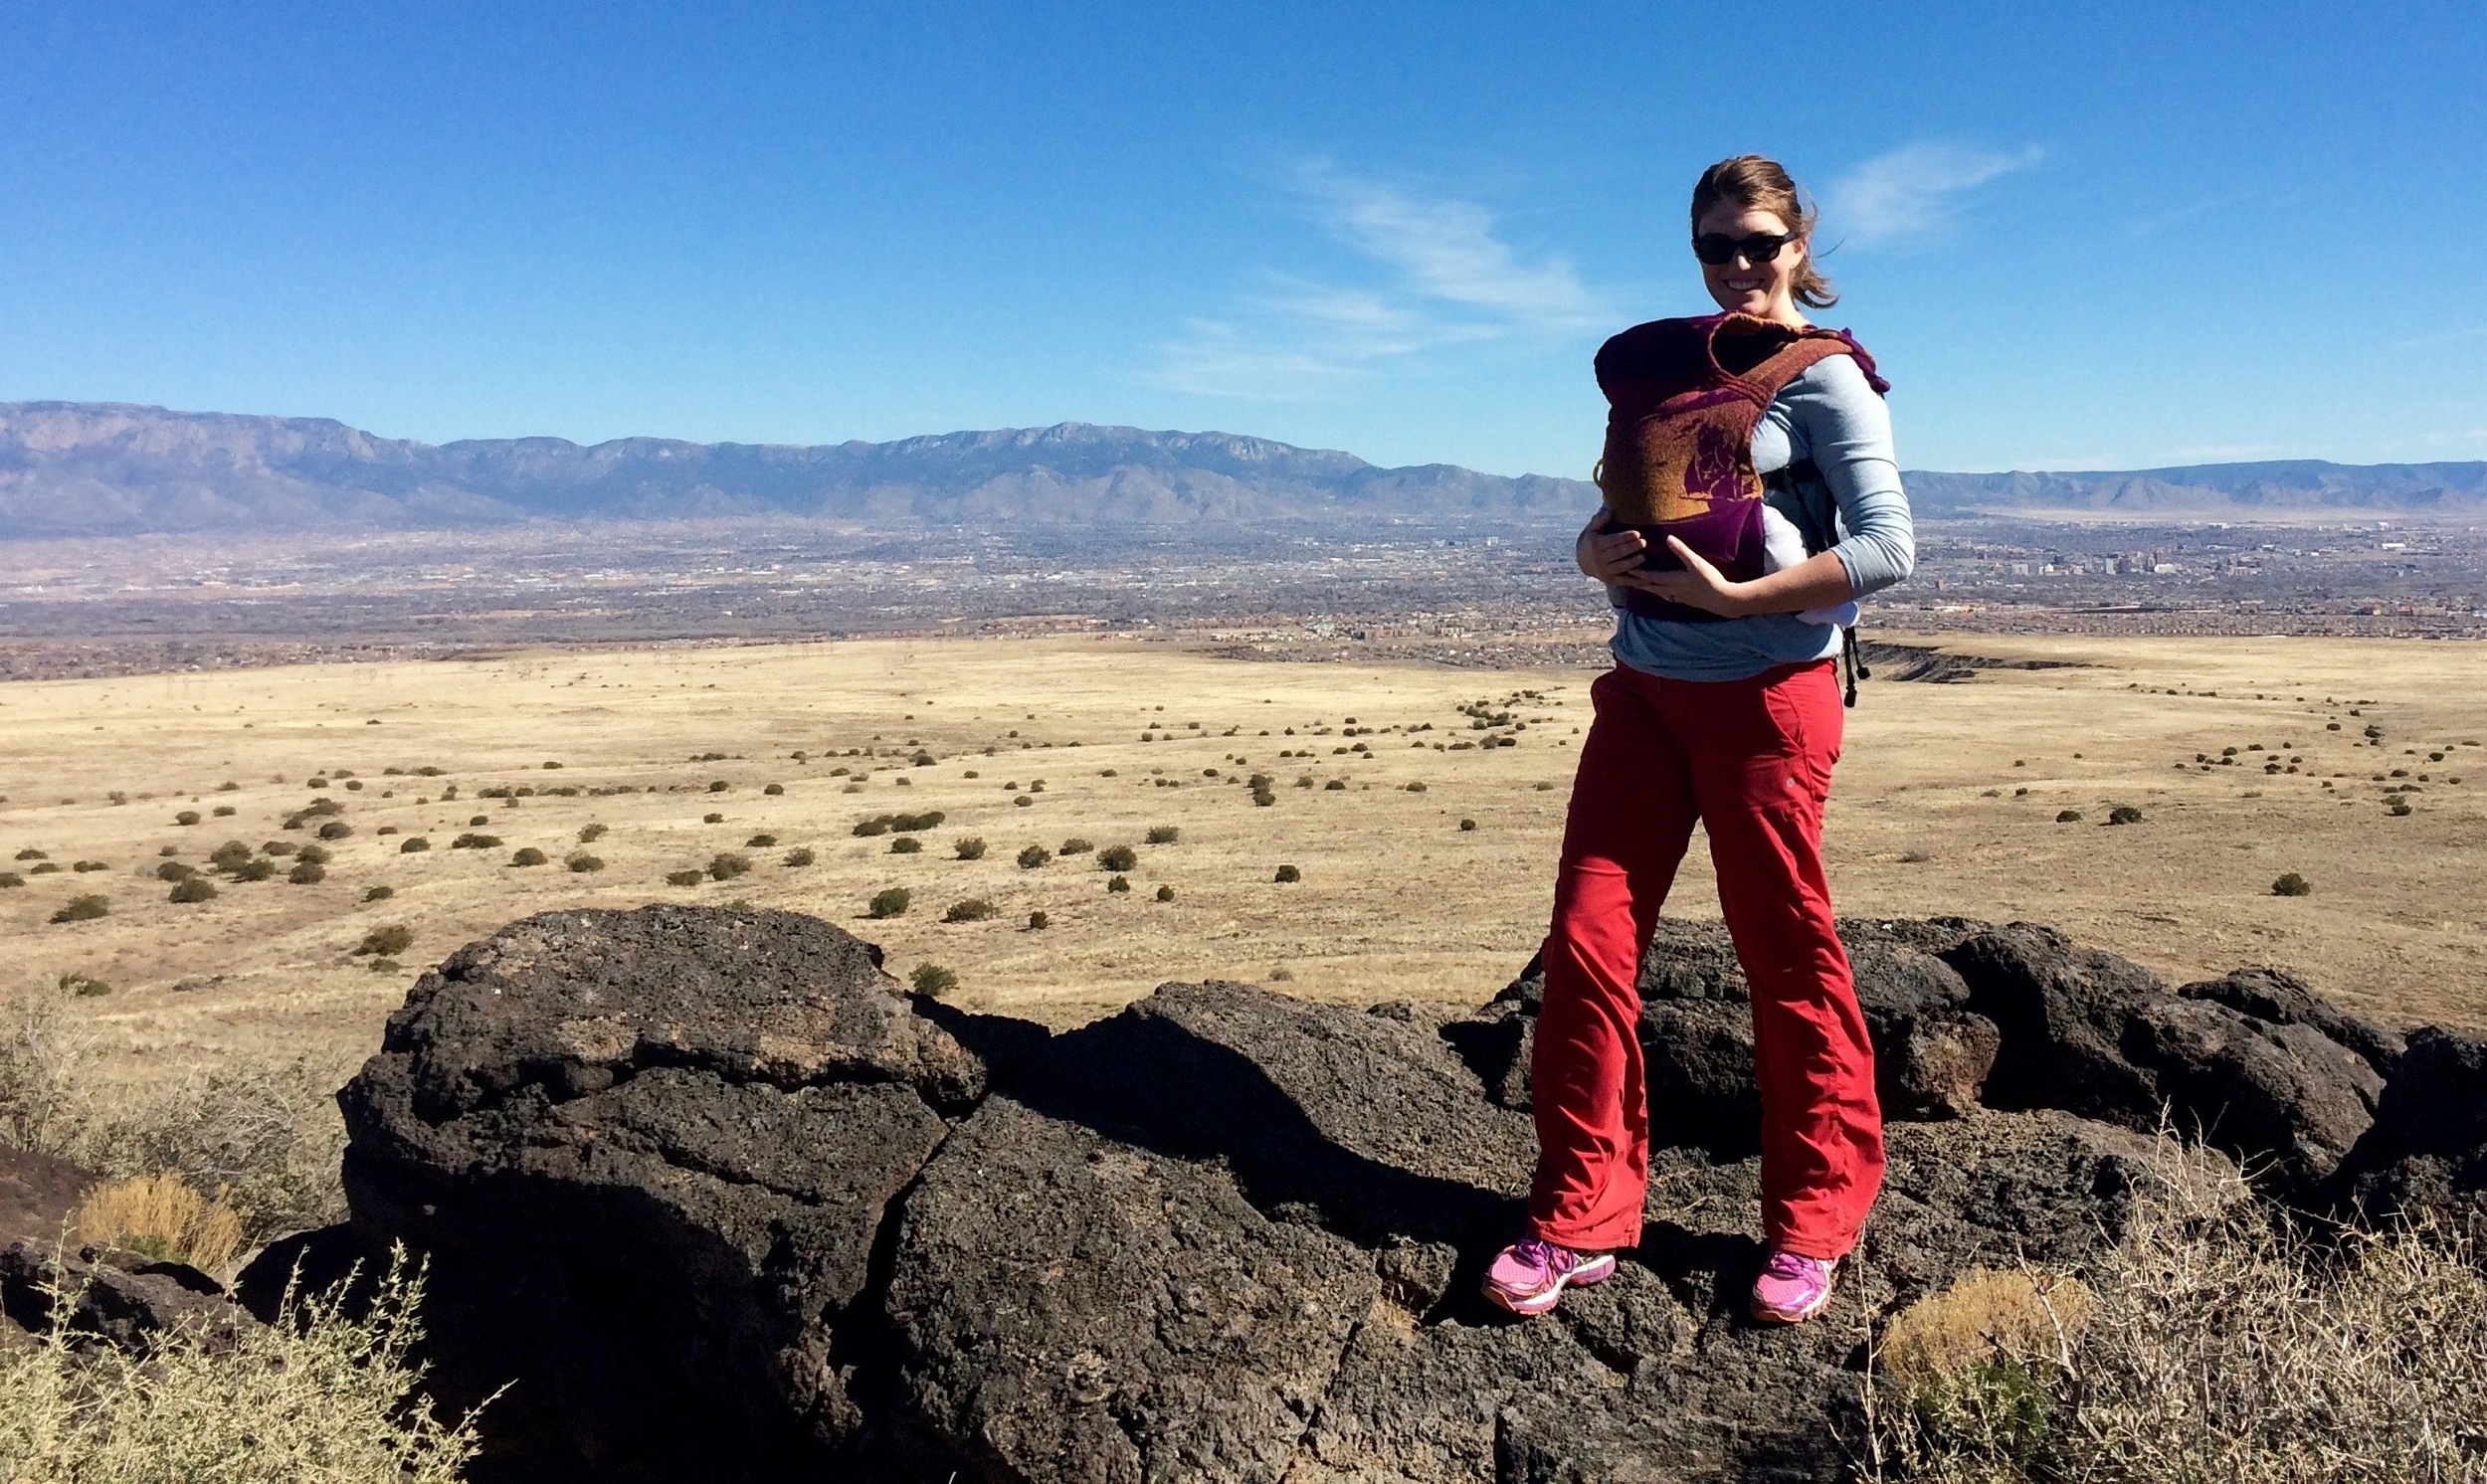 Image of Annie carrying her baby in a buckle carrier and standing on an extinct volcano in Albuquerque, NM.